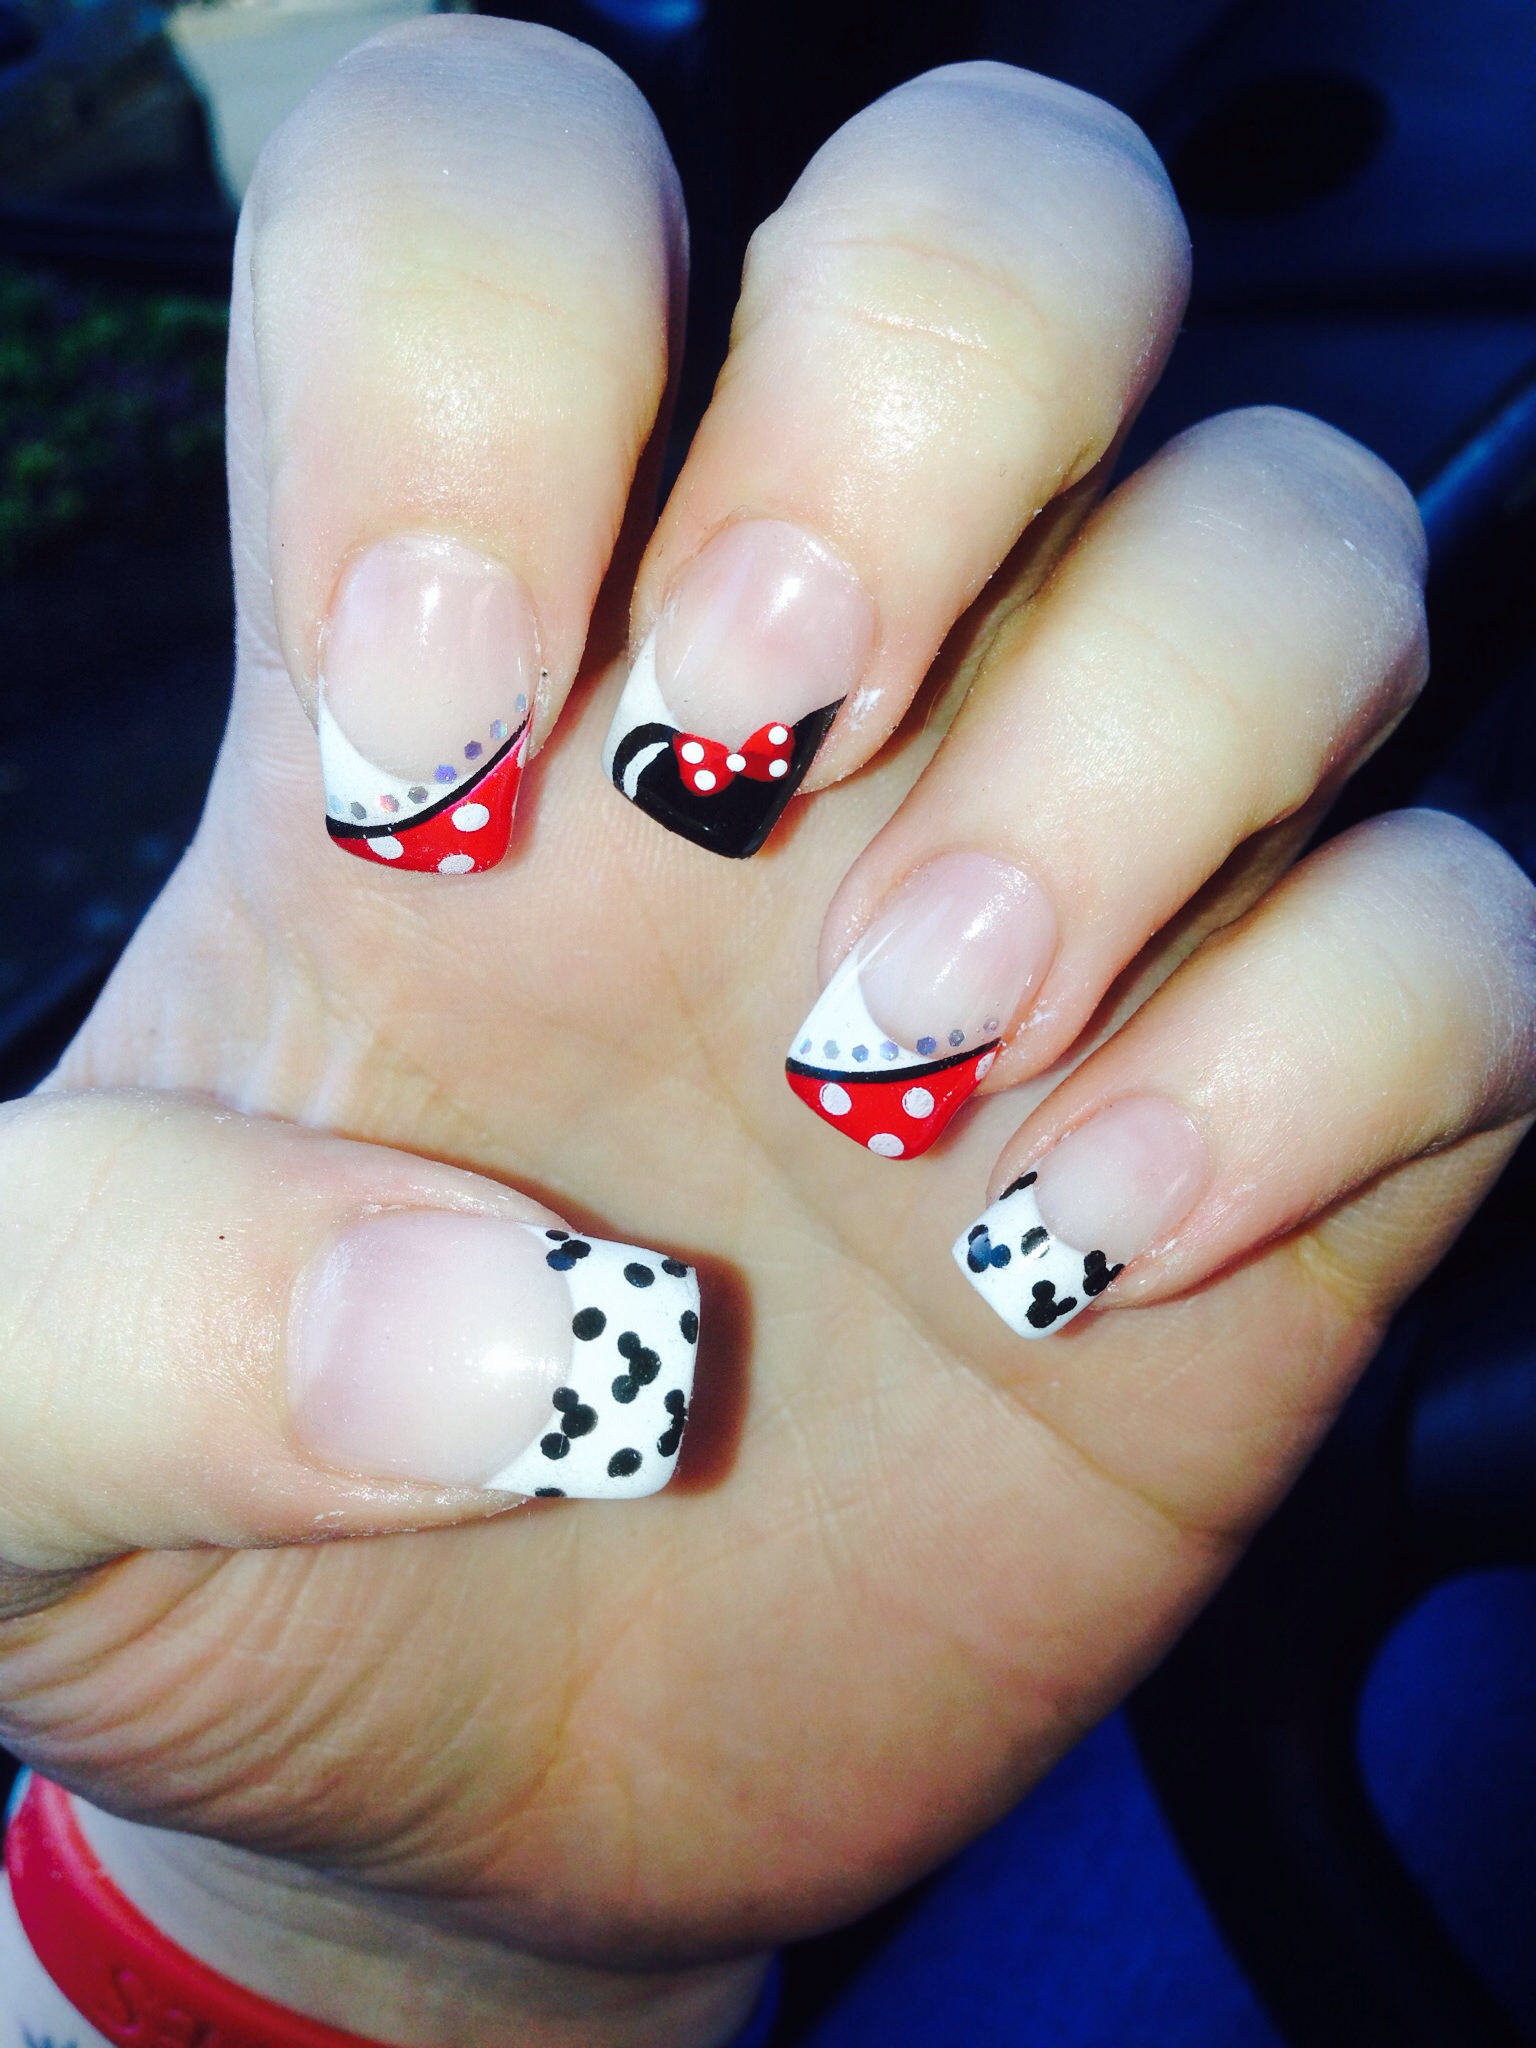 Disney Nail Art Minnie Mouse - 26+ Disney Nail Art Designs, Ideas Design Trends - Premium PSD